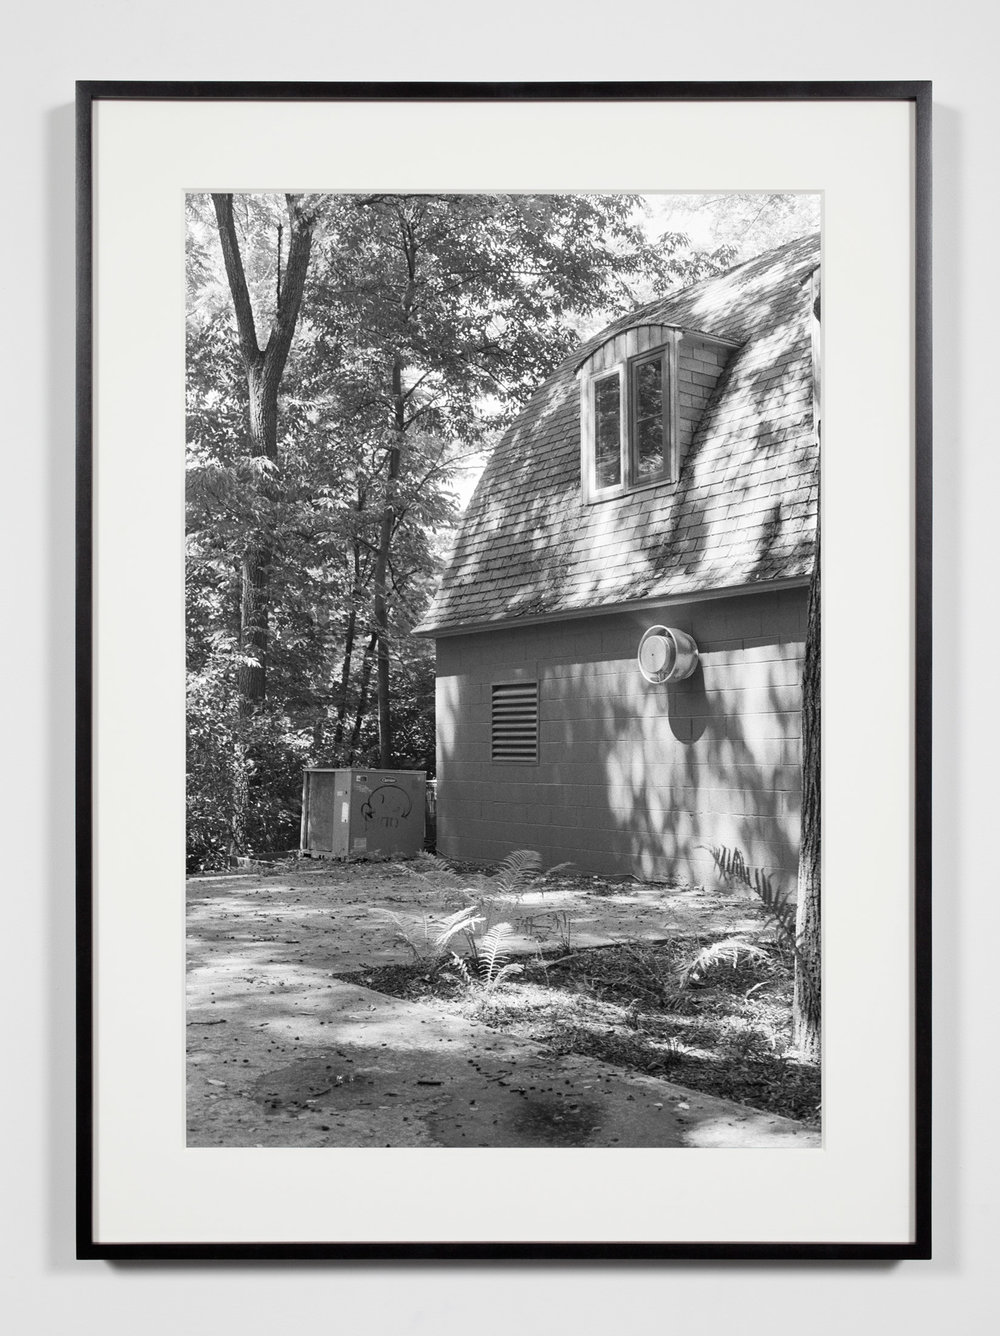 College Darkroom Building, Annandale-on-Hudson, New York, July 11, 2009    2011   Epson Ultrachrome K3 archival ink jet print on Hahnemühle Photo Rag paper  36 3/8 x 26 3/8 inches   A Diagram of Forces, 2011